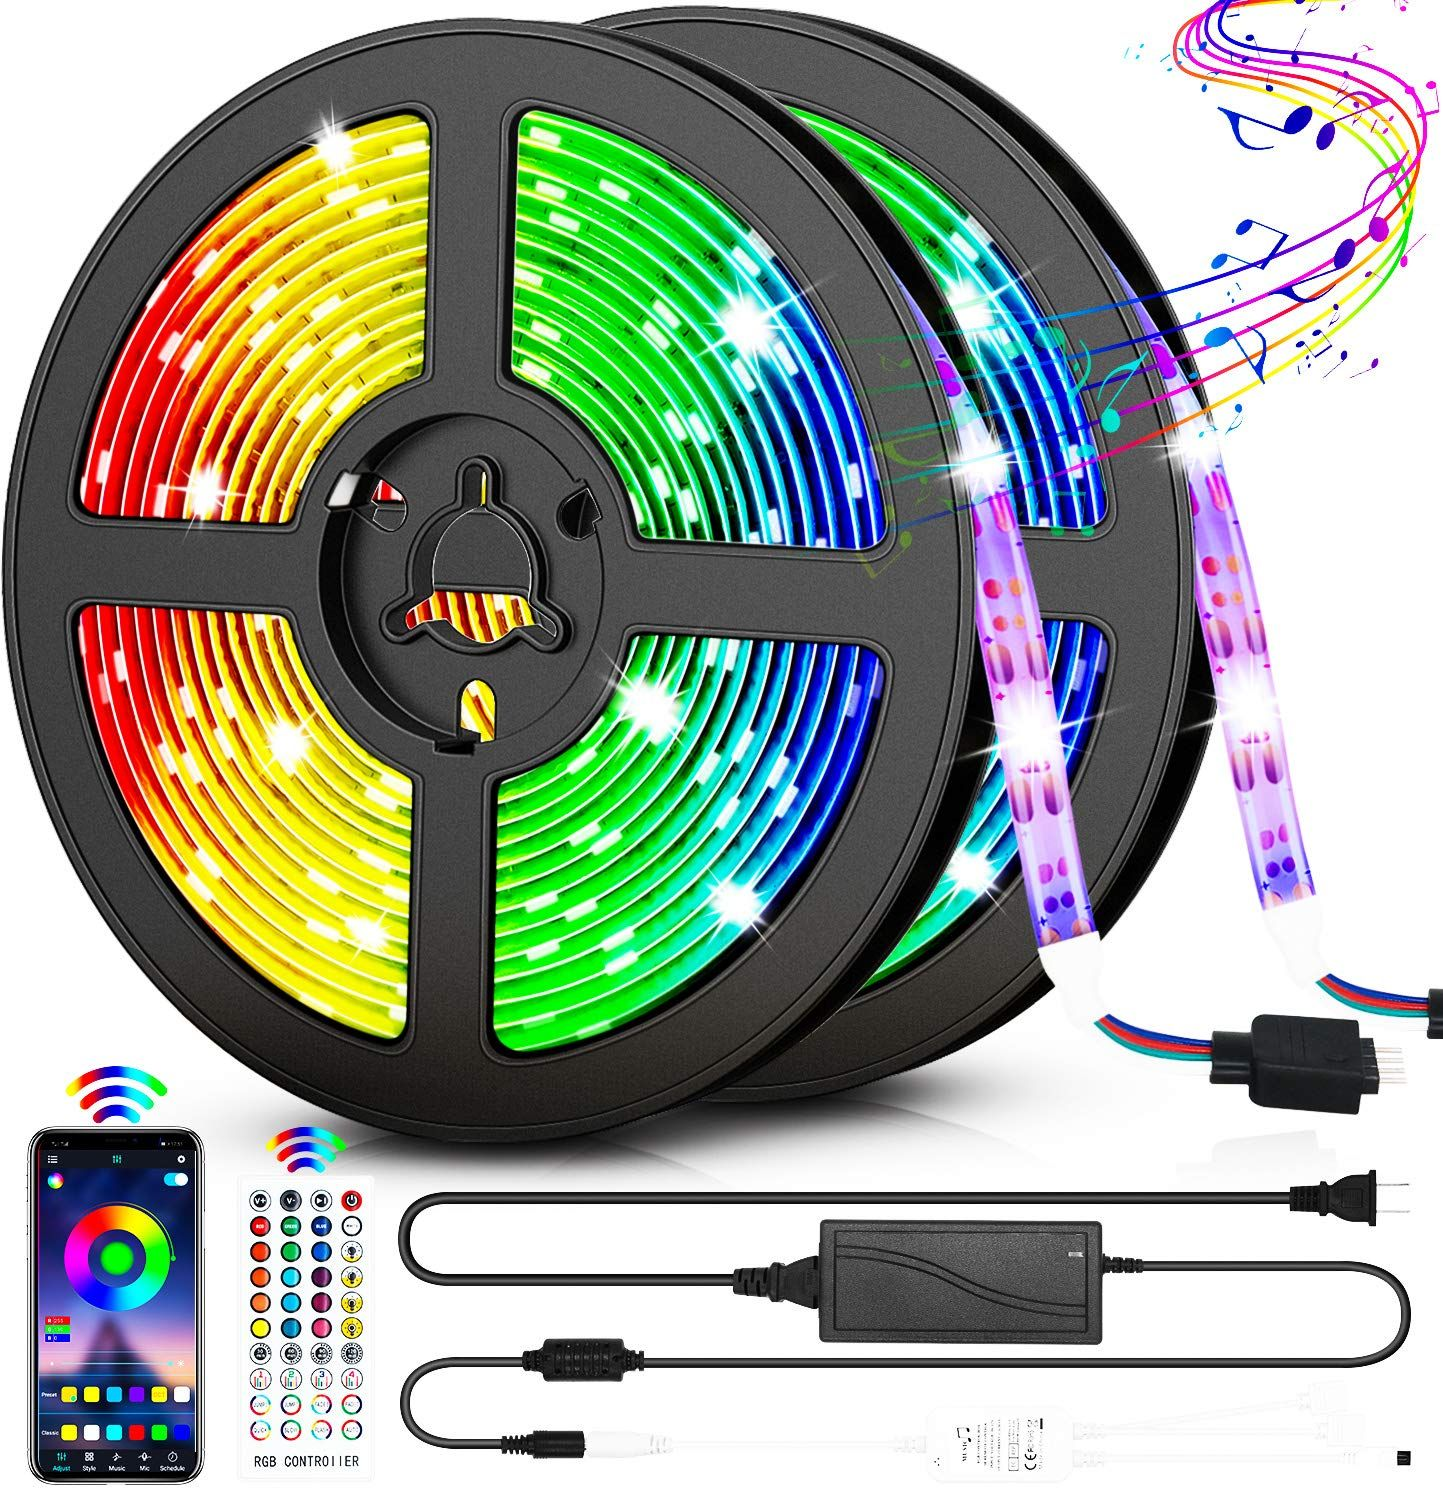 Led Strip Lights 32 8ft Rgb Color Changing Rope Lights 300 Leds Smd5050 Light Strips Voice And Mu In 2020 Color Changing Rope Lights Led Strip Lighting Strip Lighting